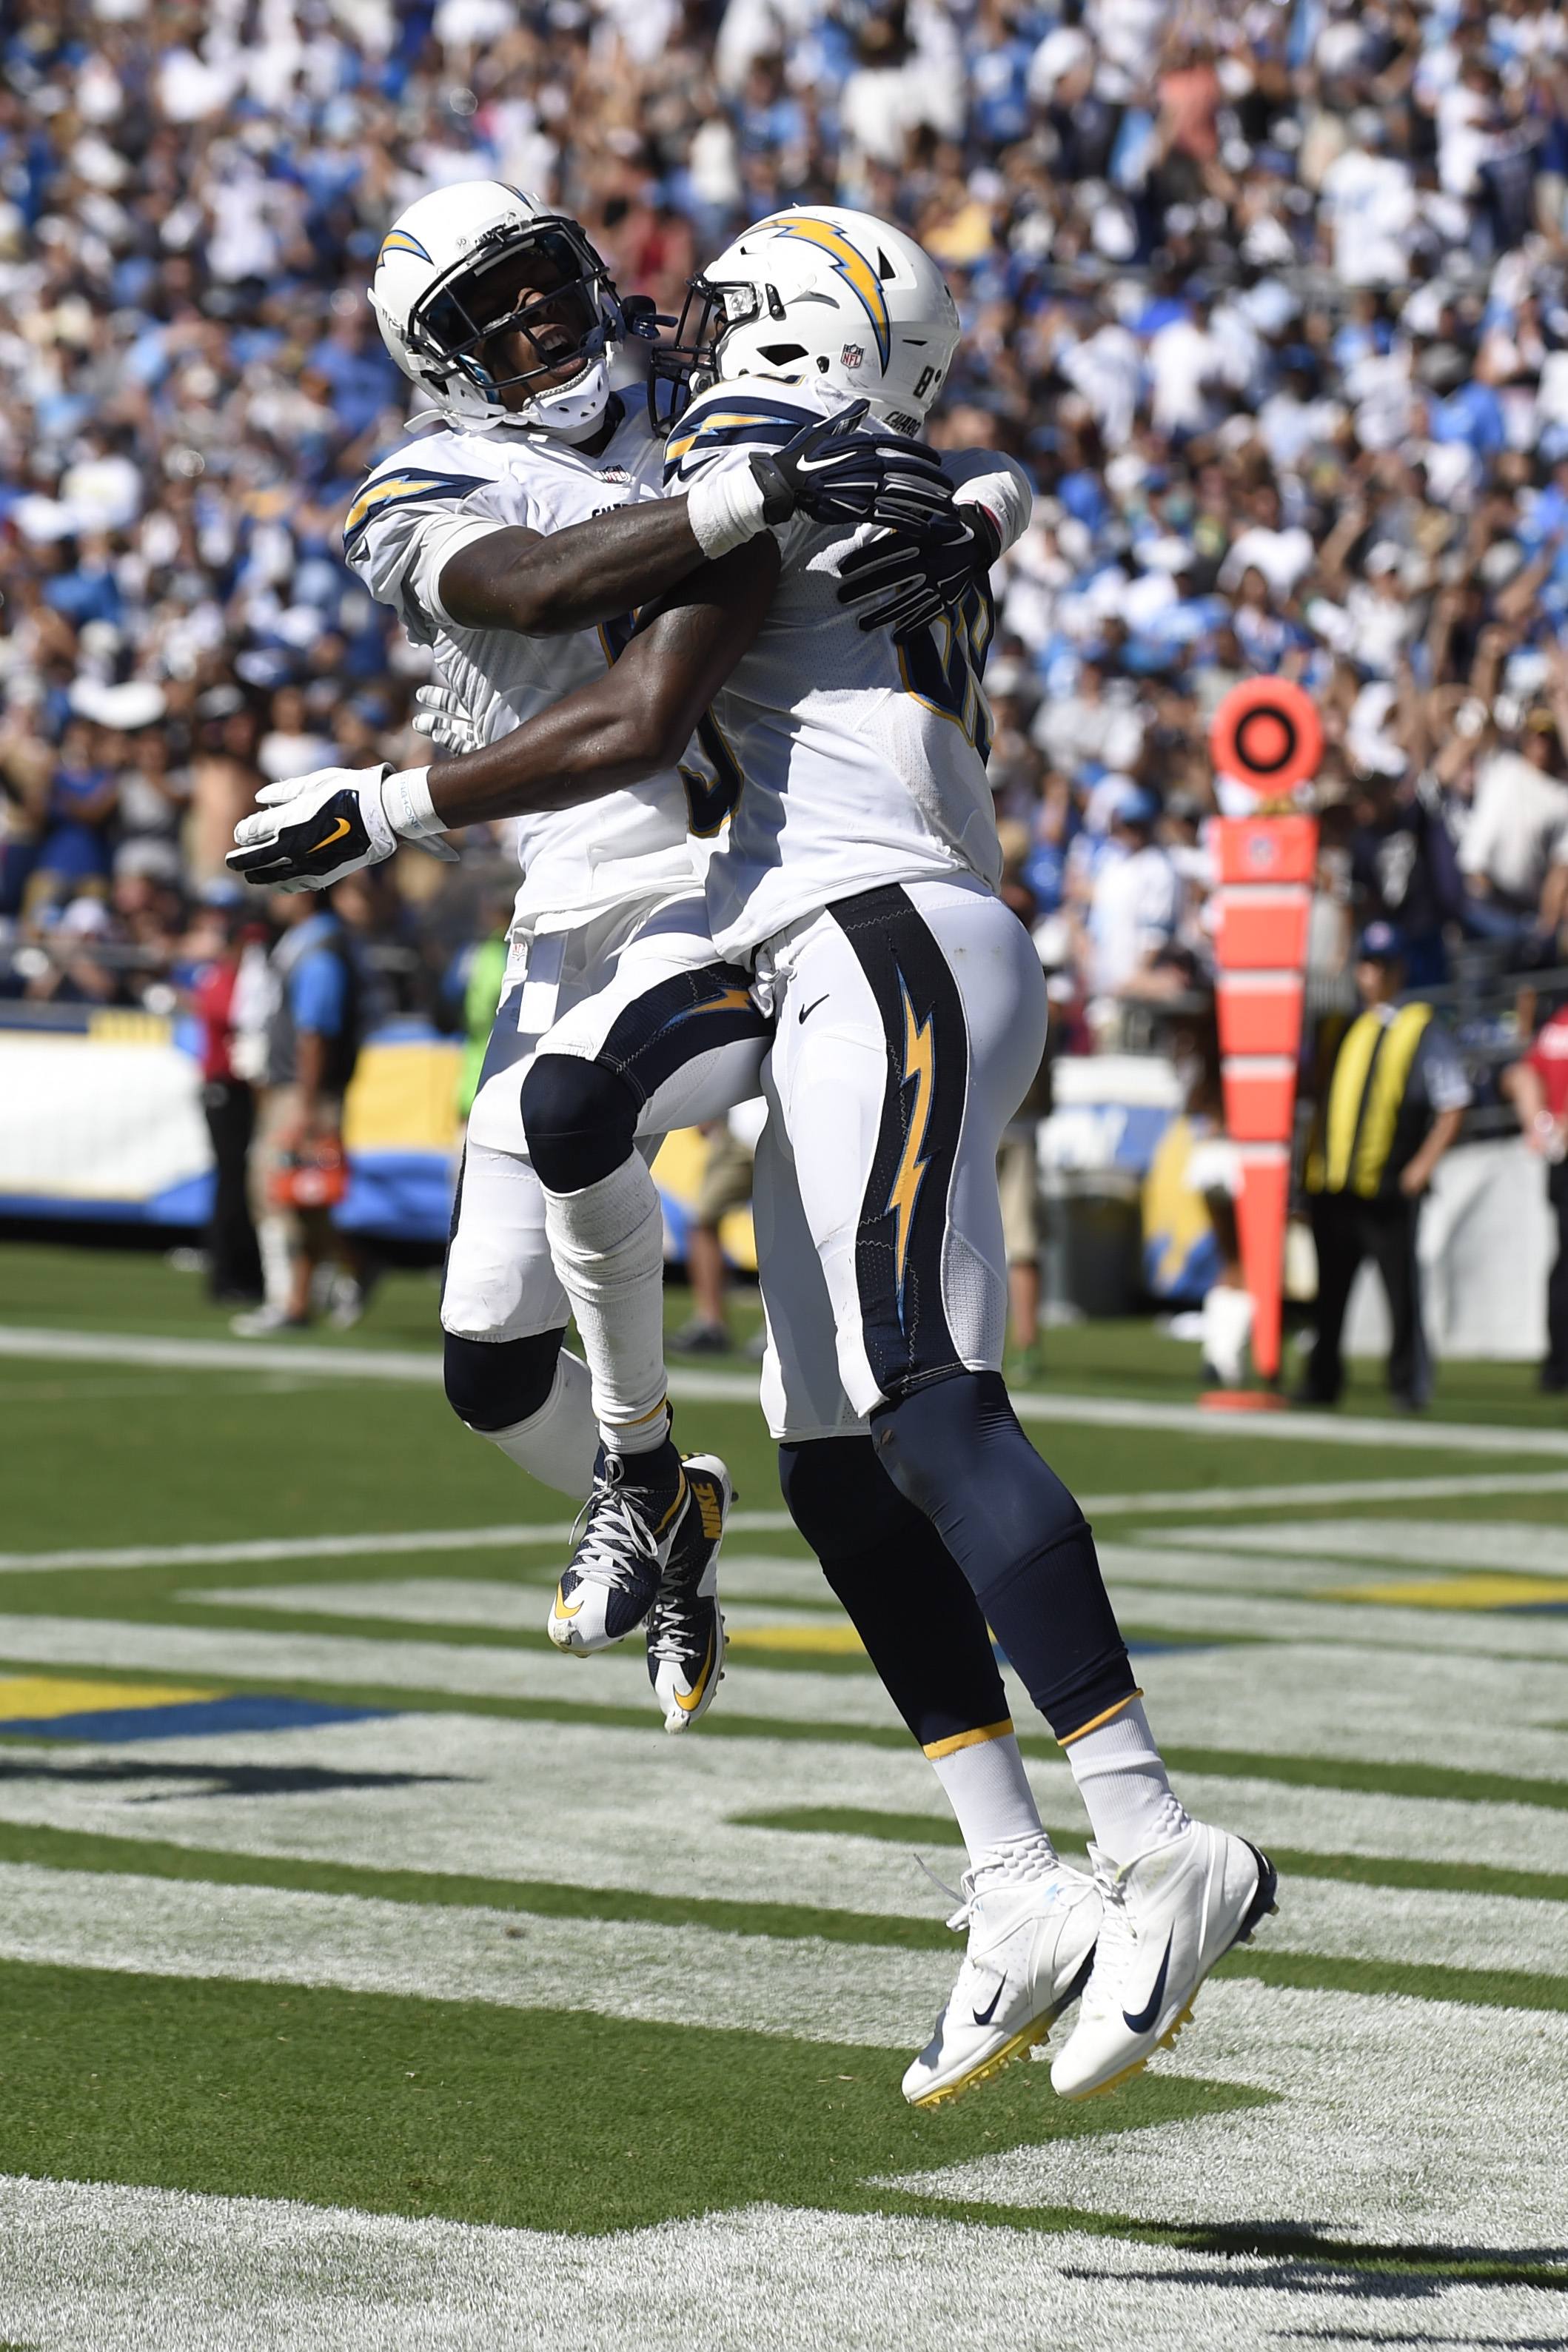 San Diego Chargers wide receiver Steve Johnson, left, celebrates with tight end Ladarius Green after Green scored a touchdown against the Detroit Lions during the second half of an NFL football game Sunday, Sept. 13, 2015, in San Diego. (AP Photo/Denis Po